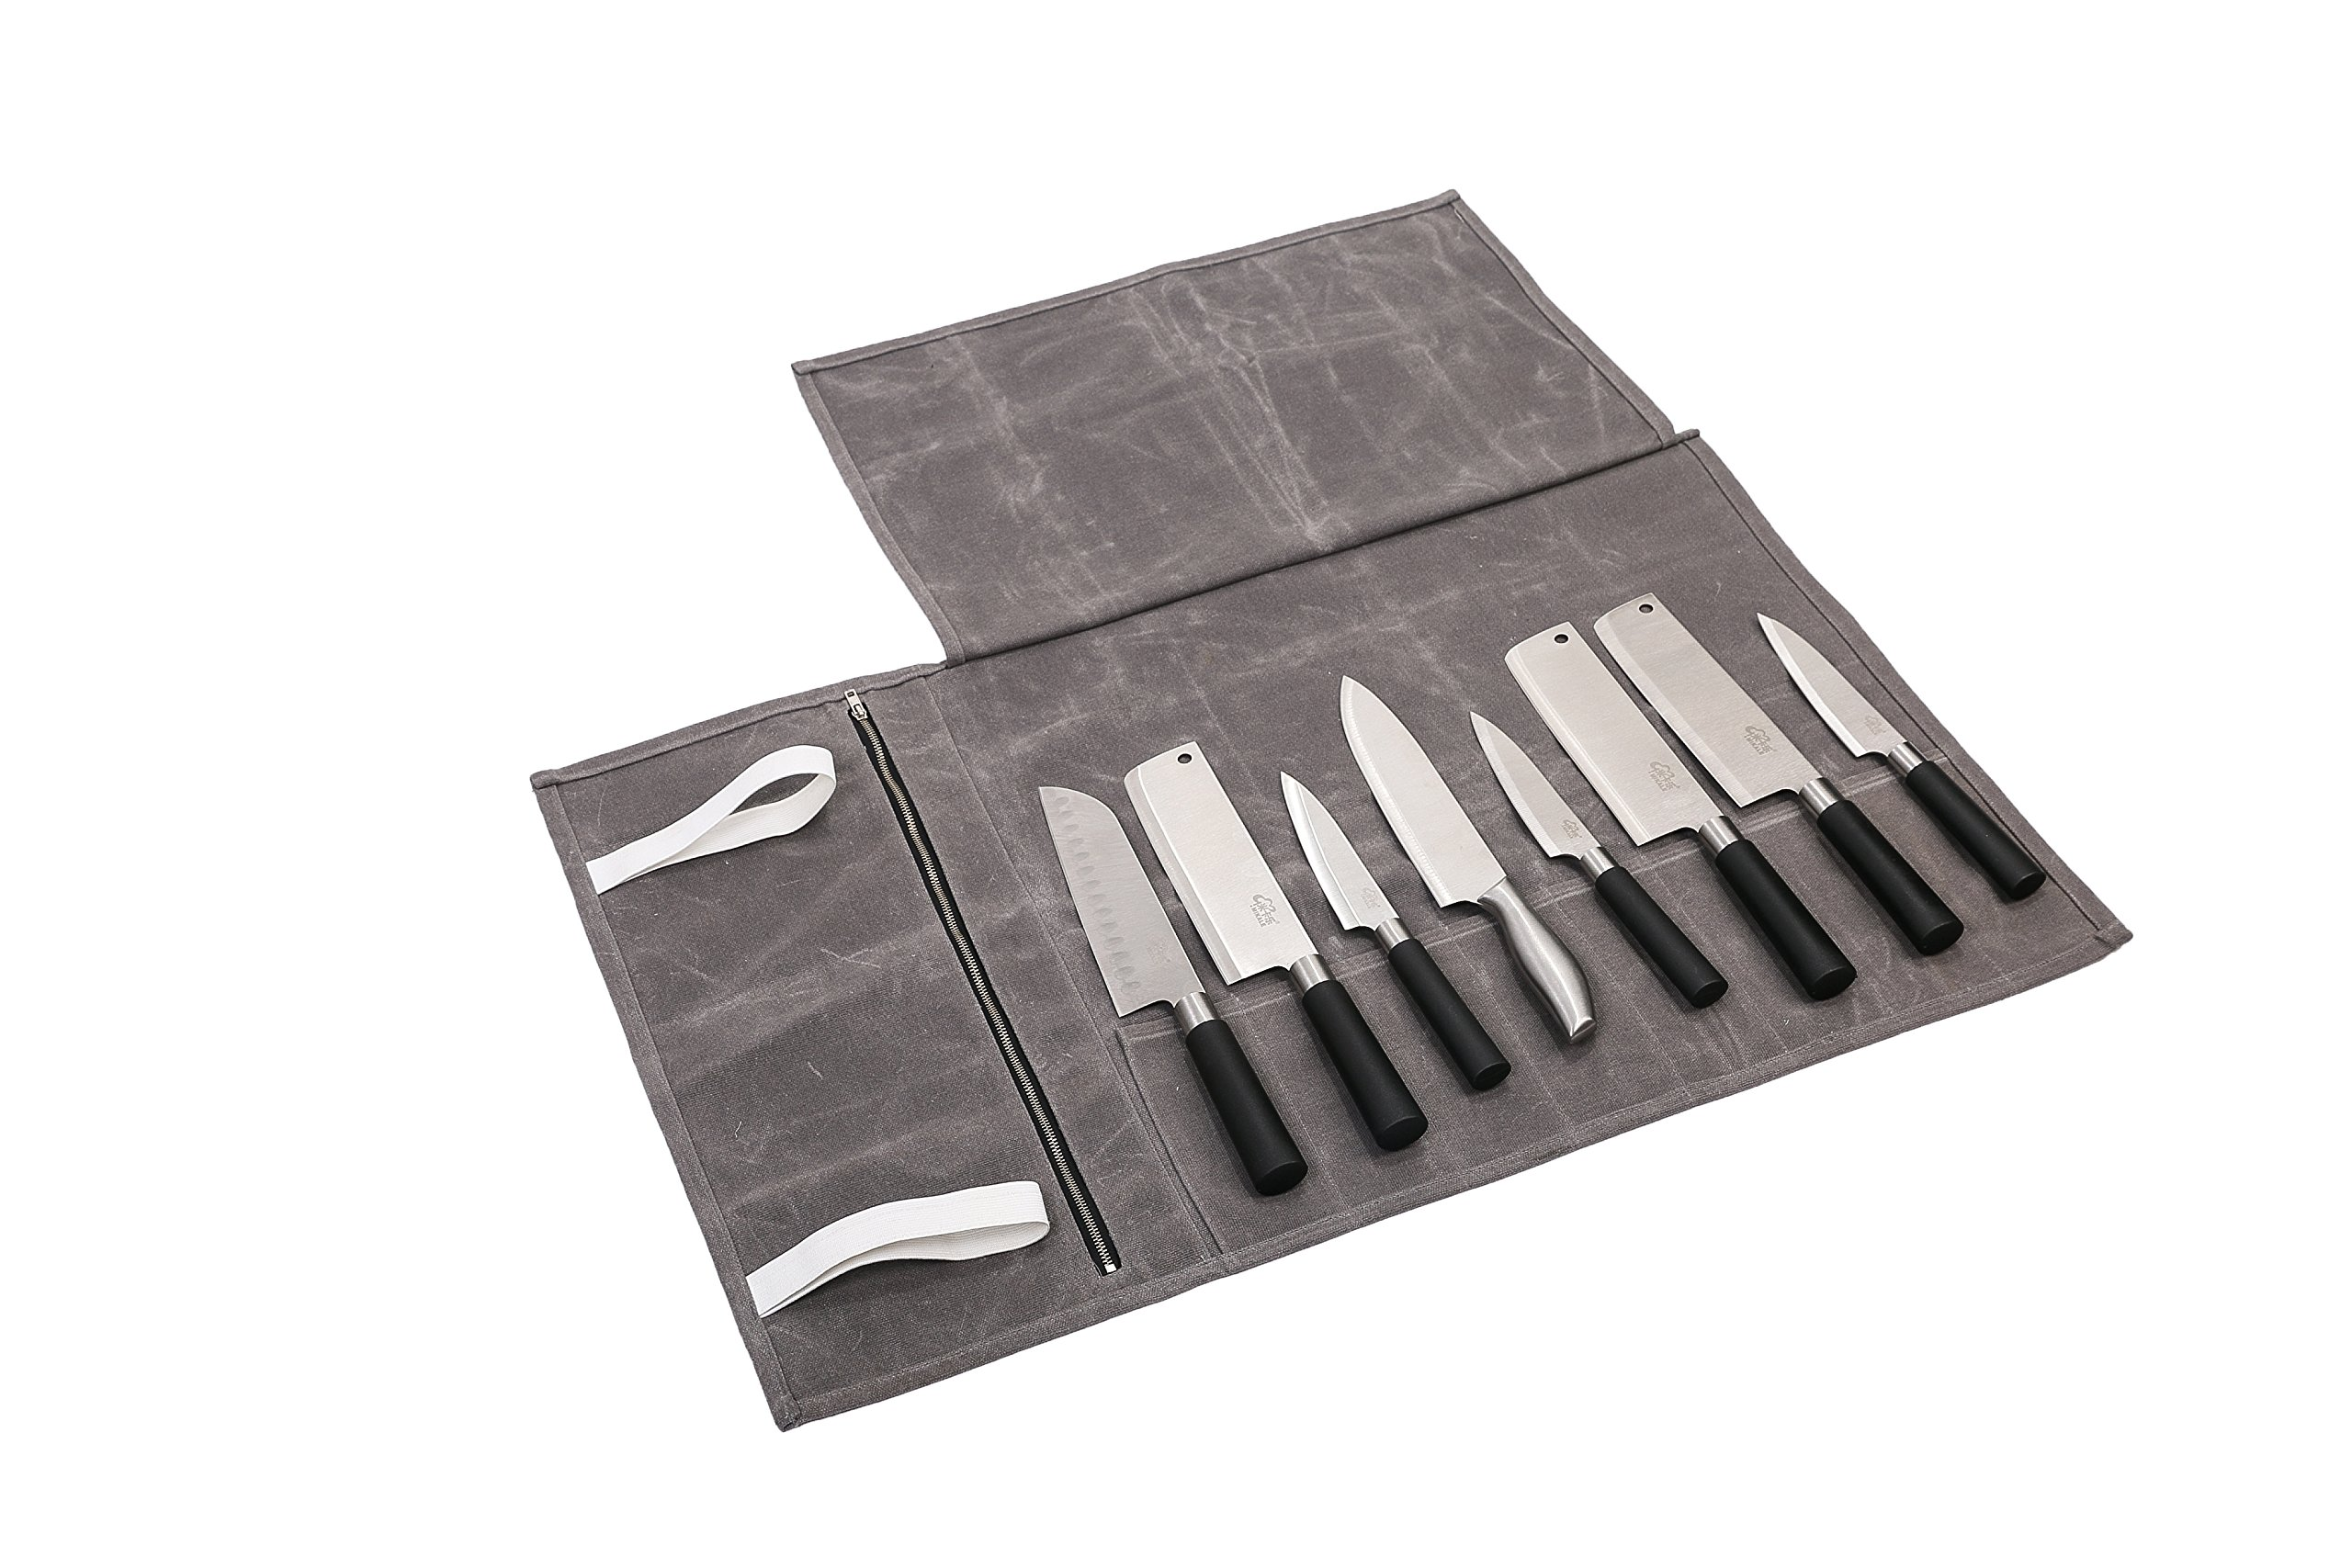 Hersent Waterproof Waxed Canvas Chef's Knife Roll Up Storage Bag with 8 Slots Portable Travel Chef Knife Case Carrier Stores Up 8 Knives Plus a Zipper Pocket for Kitchen Utensils HGJ17-C-US by Hersent (Image #3)